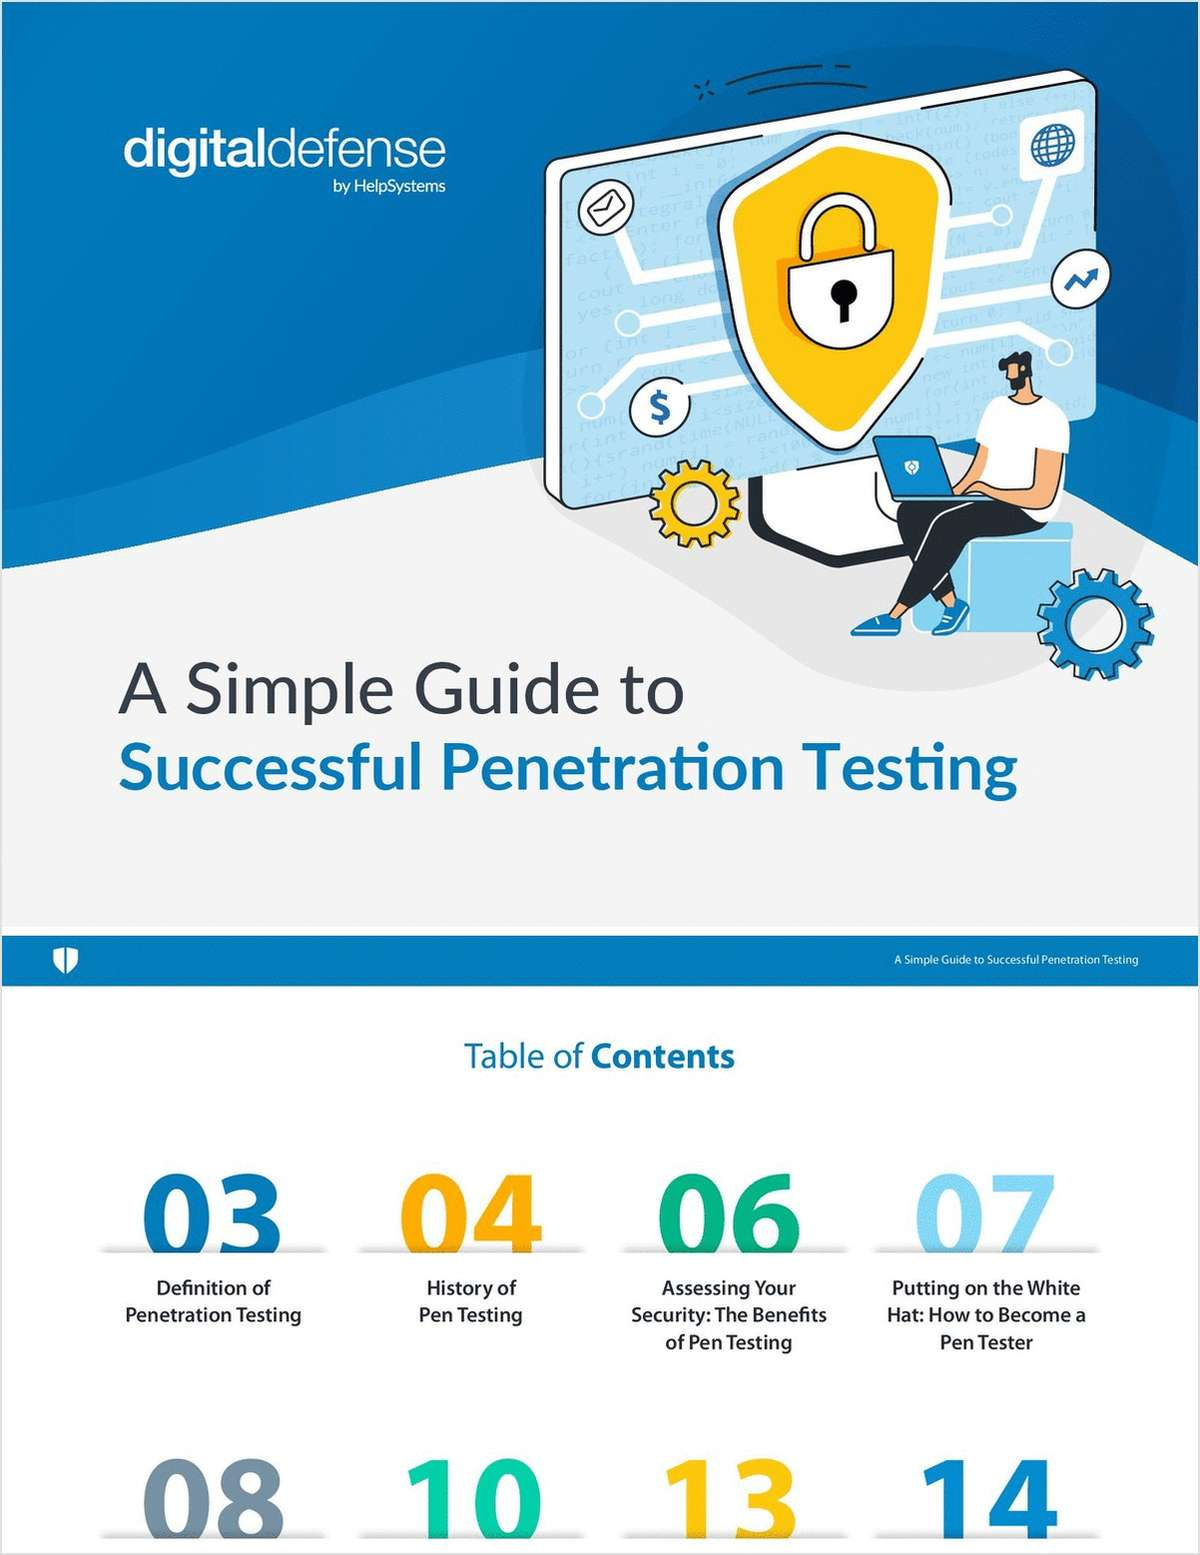 A Simple Guide to Successful Penetration Testing